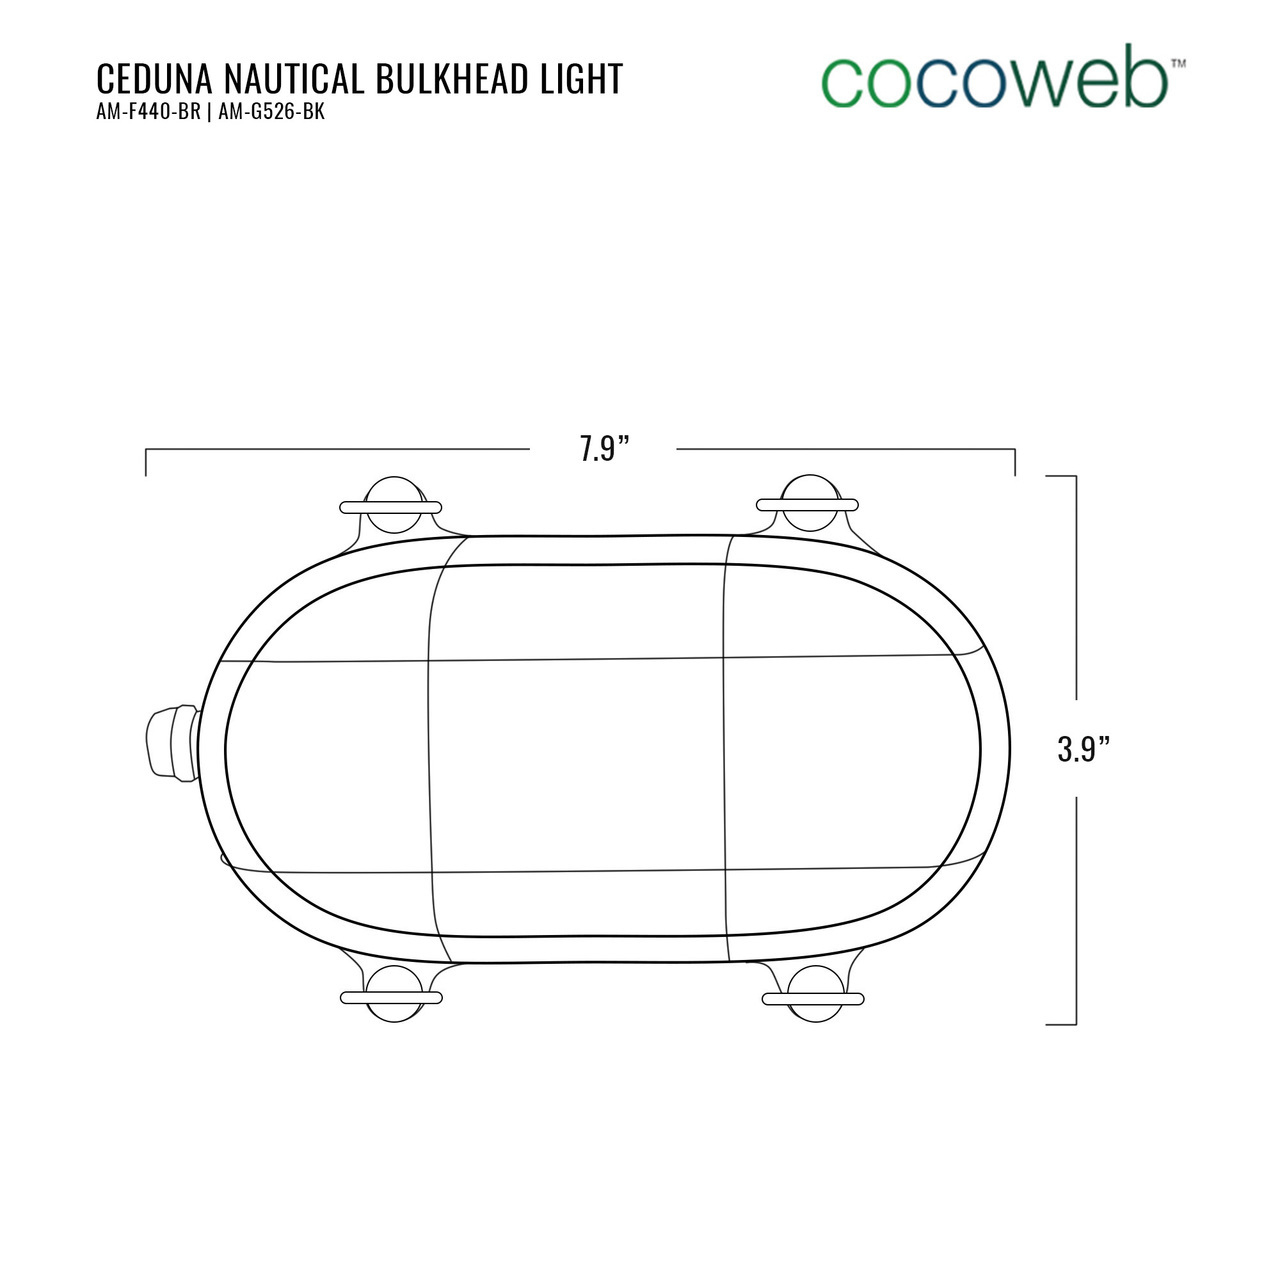 Cocoweb Nautical Bulkhead Light Ceduna